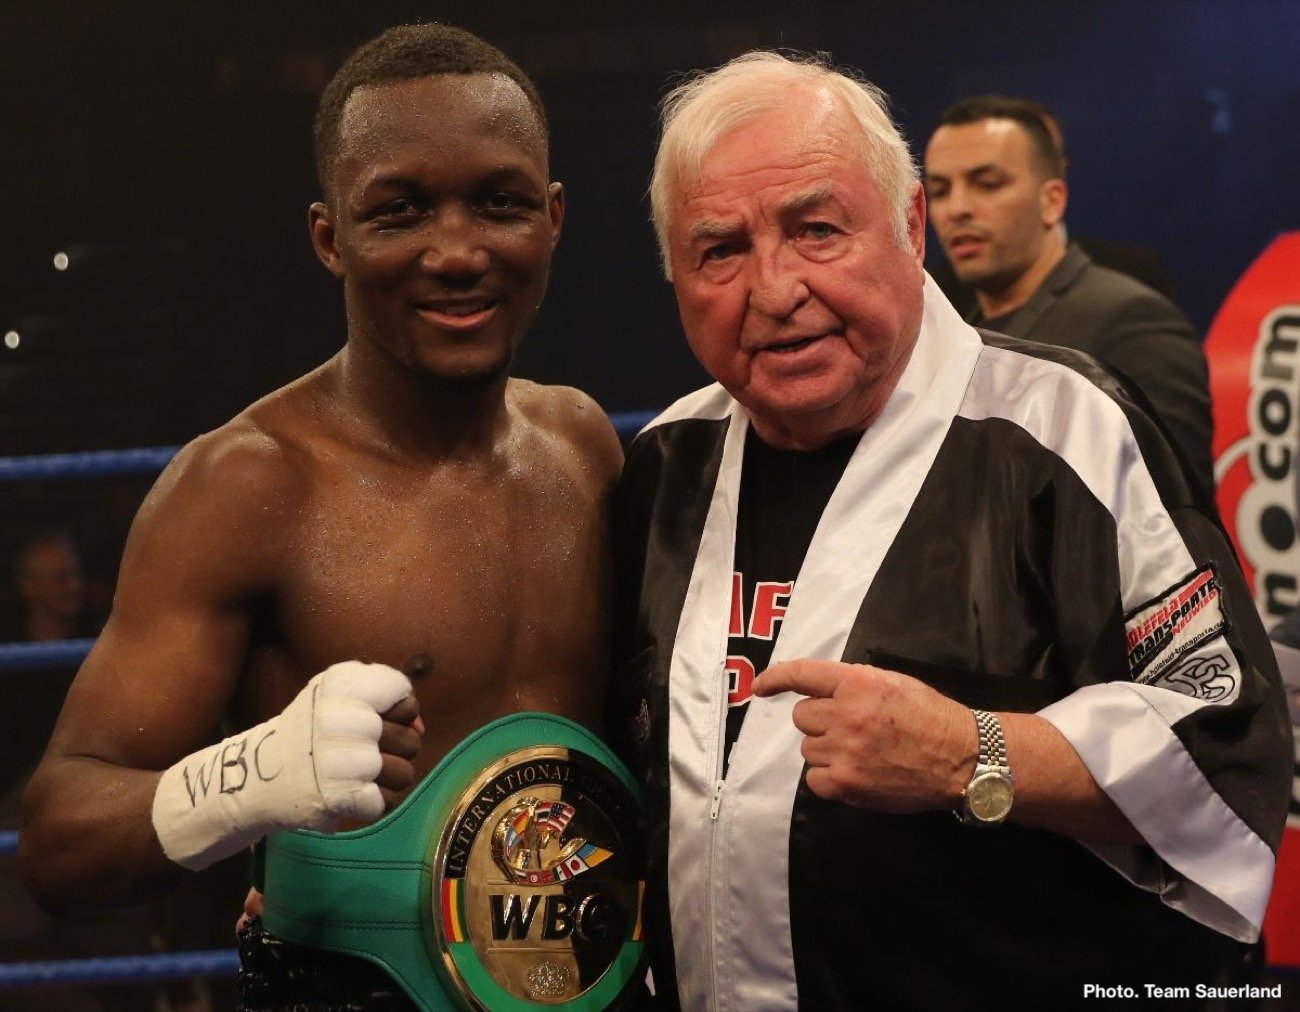 Abass Baraou - Abass Baraou (7-0, 4 KOs) will make his UK debut on October 26 at The O2 in London as the unbeaten German super welterweight sensation faces John O'Donnell (33-2, 11 KOs) on the World Boxing Super Series undercard, live on Sky Sports Box Office in the UK and DAZN in the US.